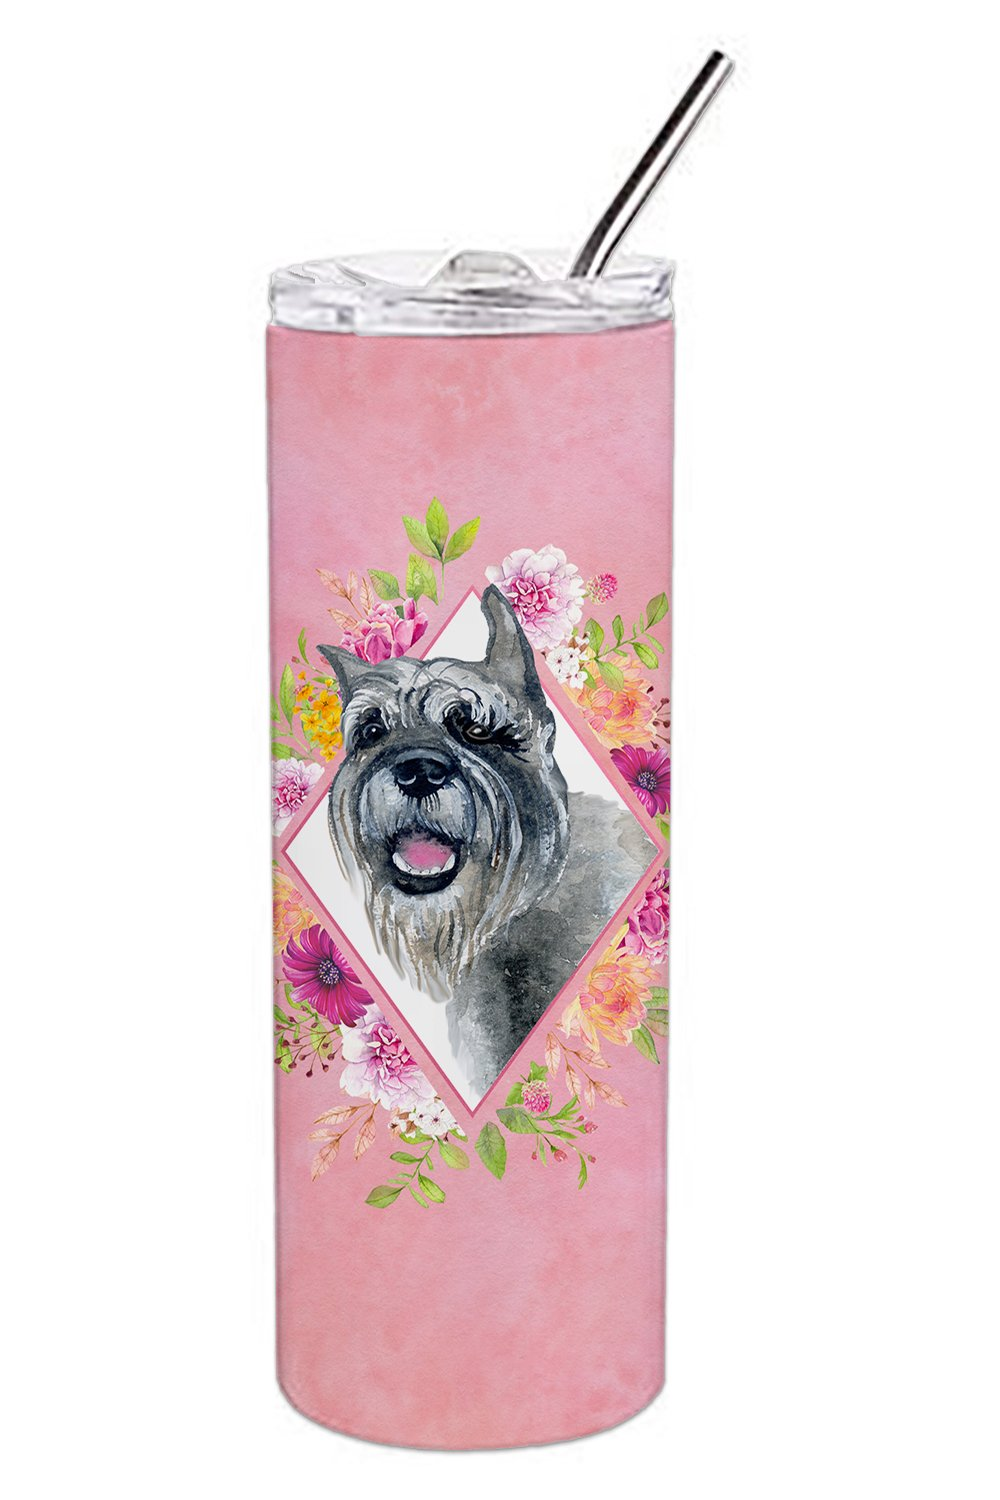 Schnauzer Pink Flowers Double Walled Stainless Steel 20 oz Skinny Tumbler CK4179TBL20 by Caroline's Treasures